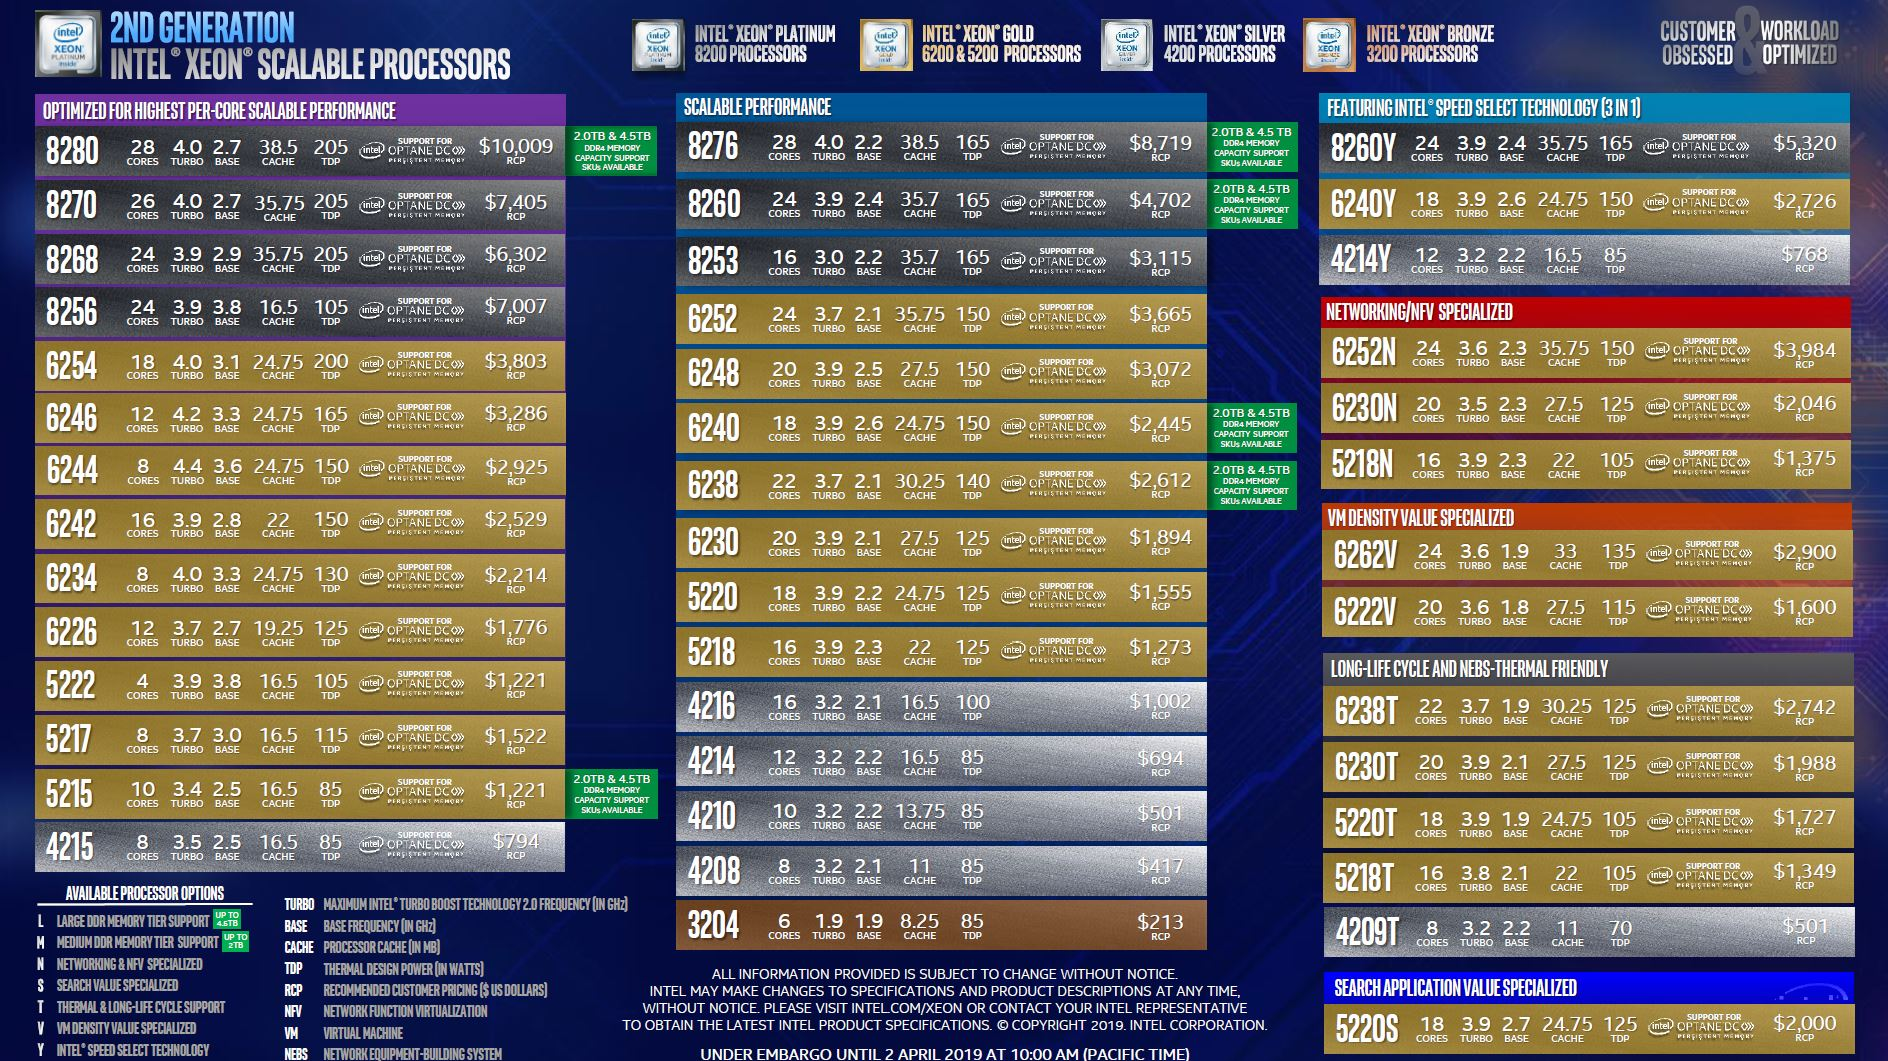 Second Generation Intel Xeon Scalable Processors SKU List With Pricing Update